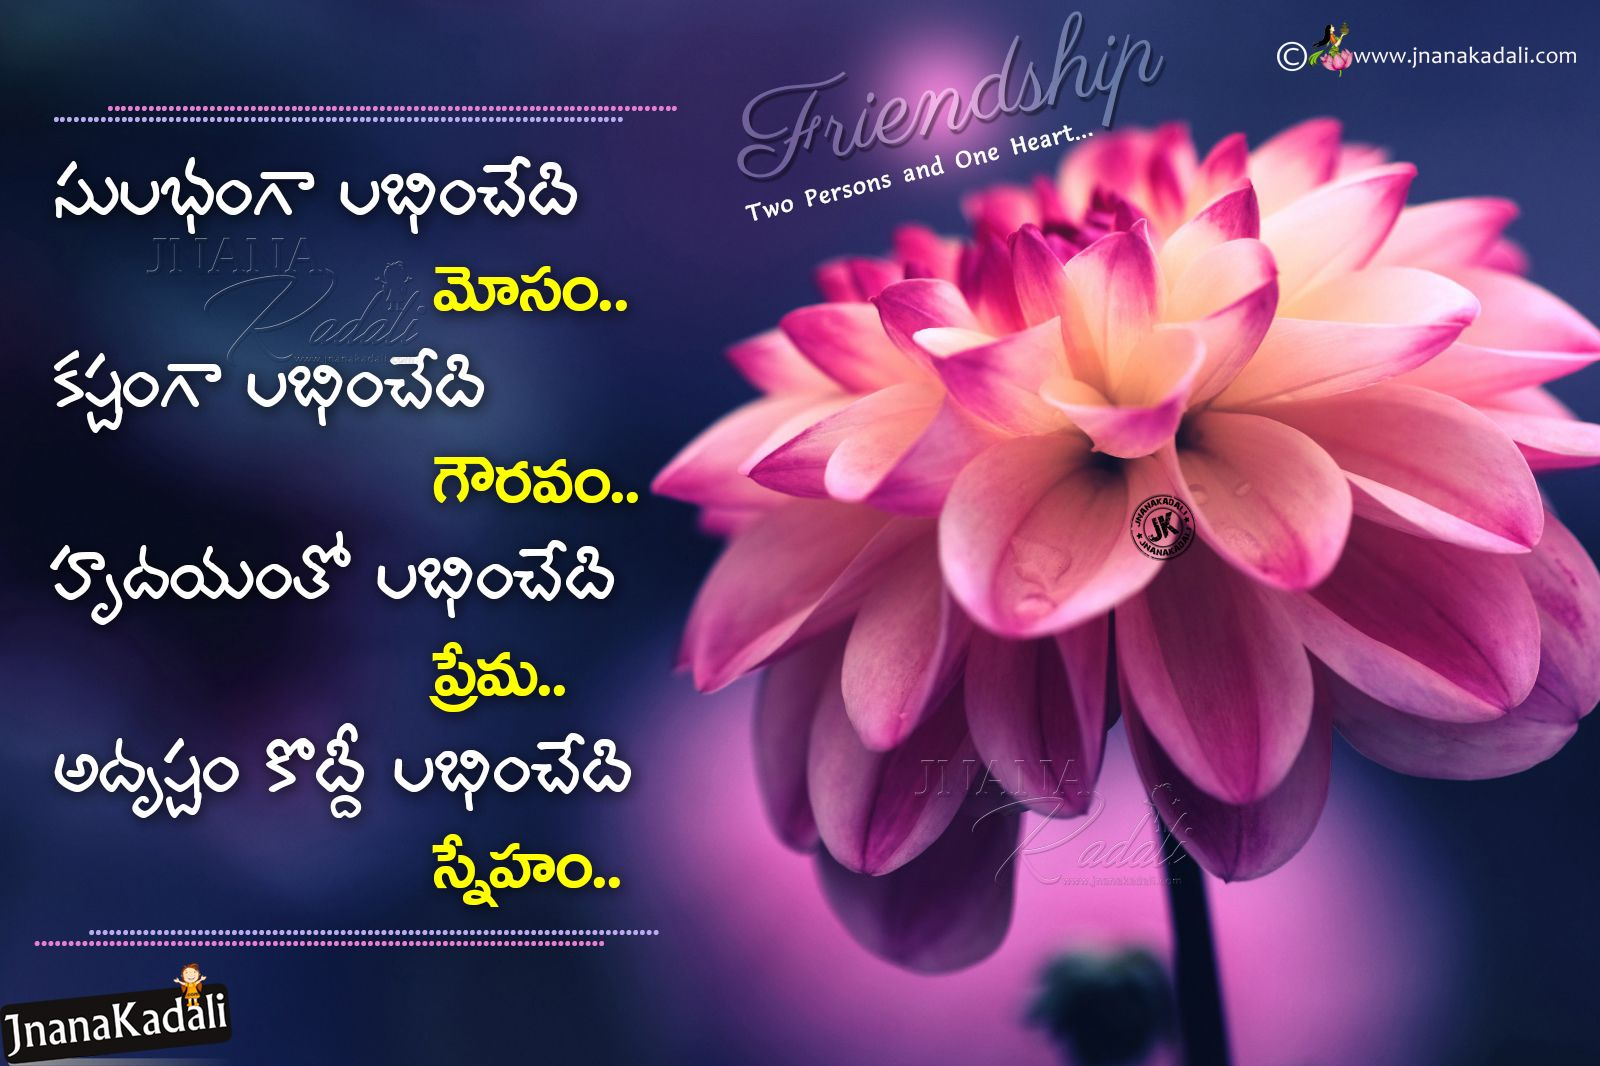 Heart Touching Friendship Quotes Hd Wallpapers In Telugu Heart